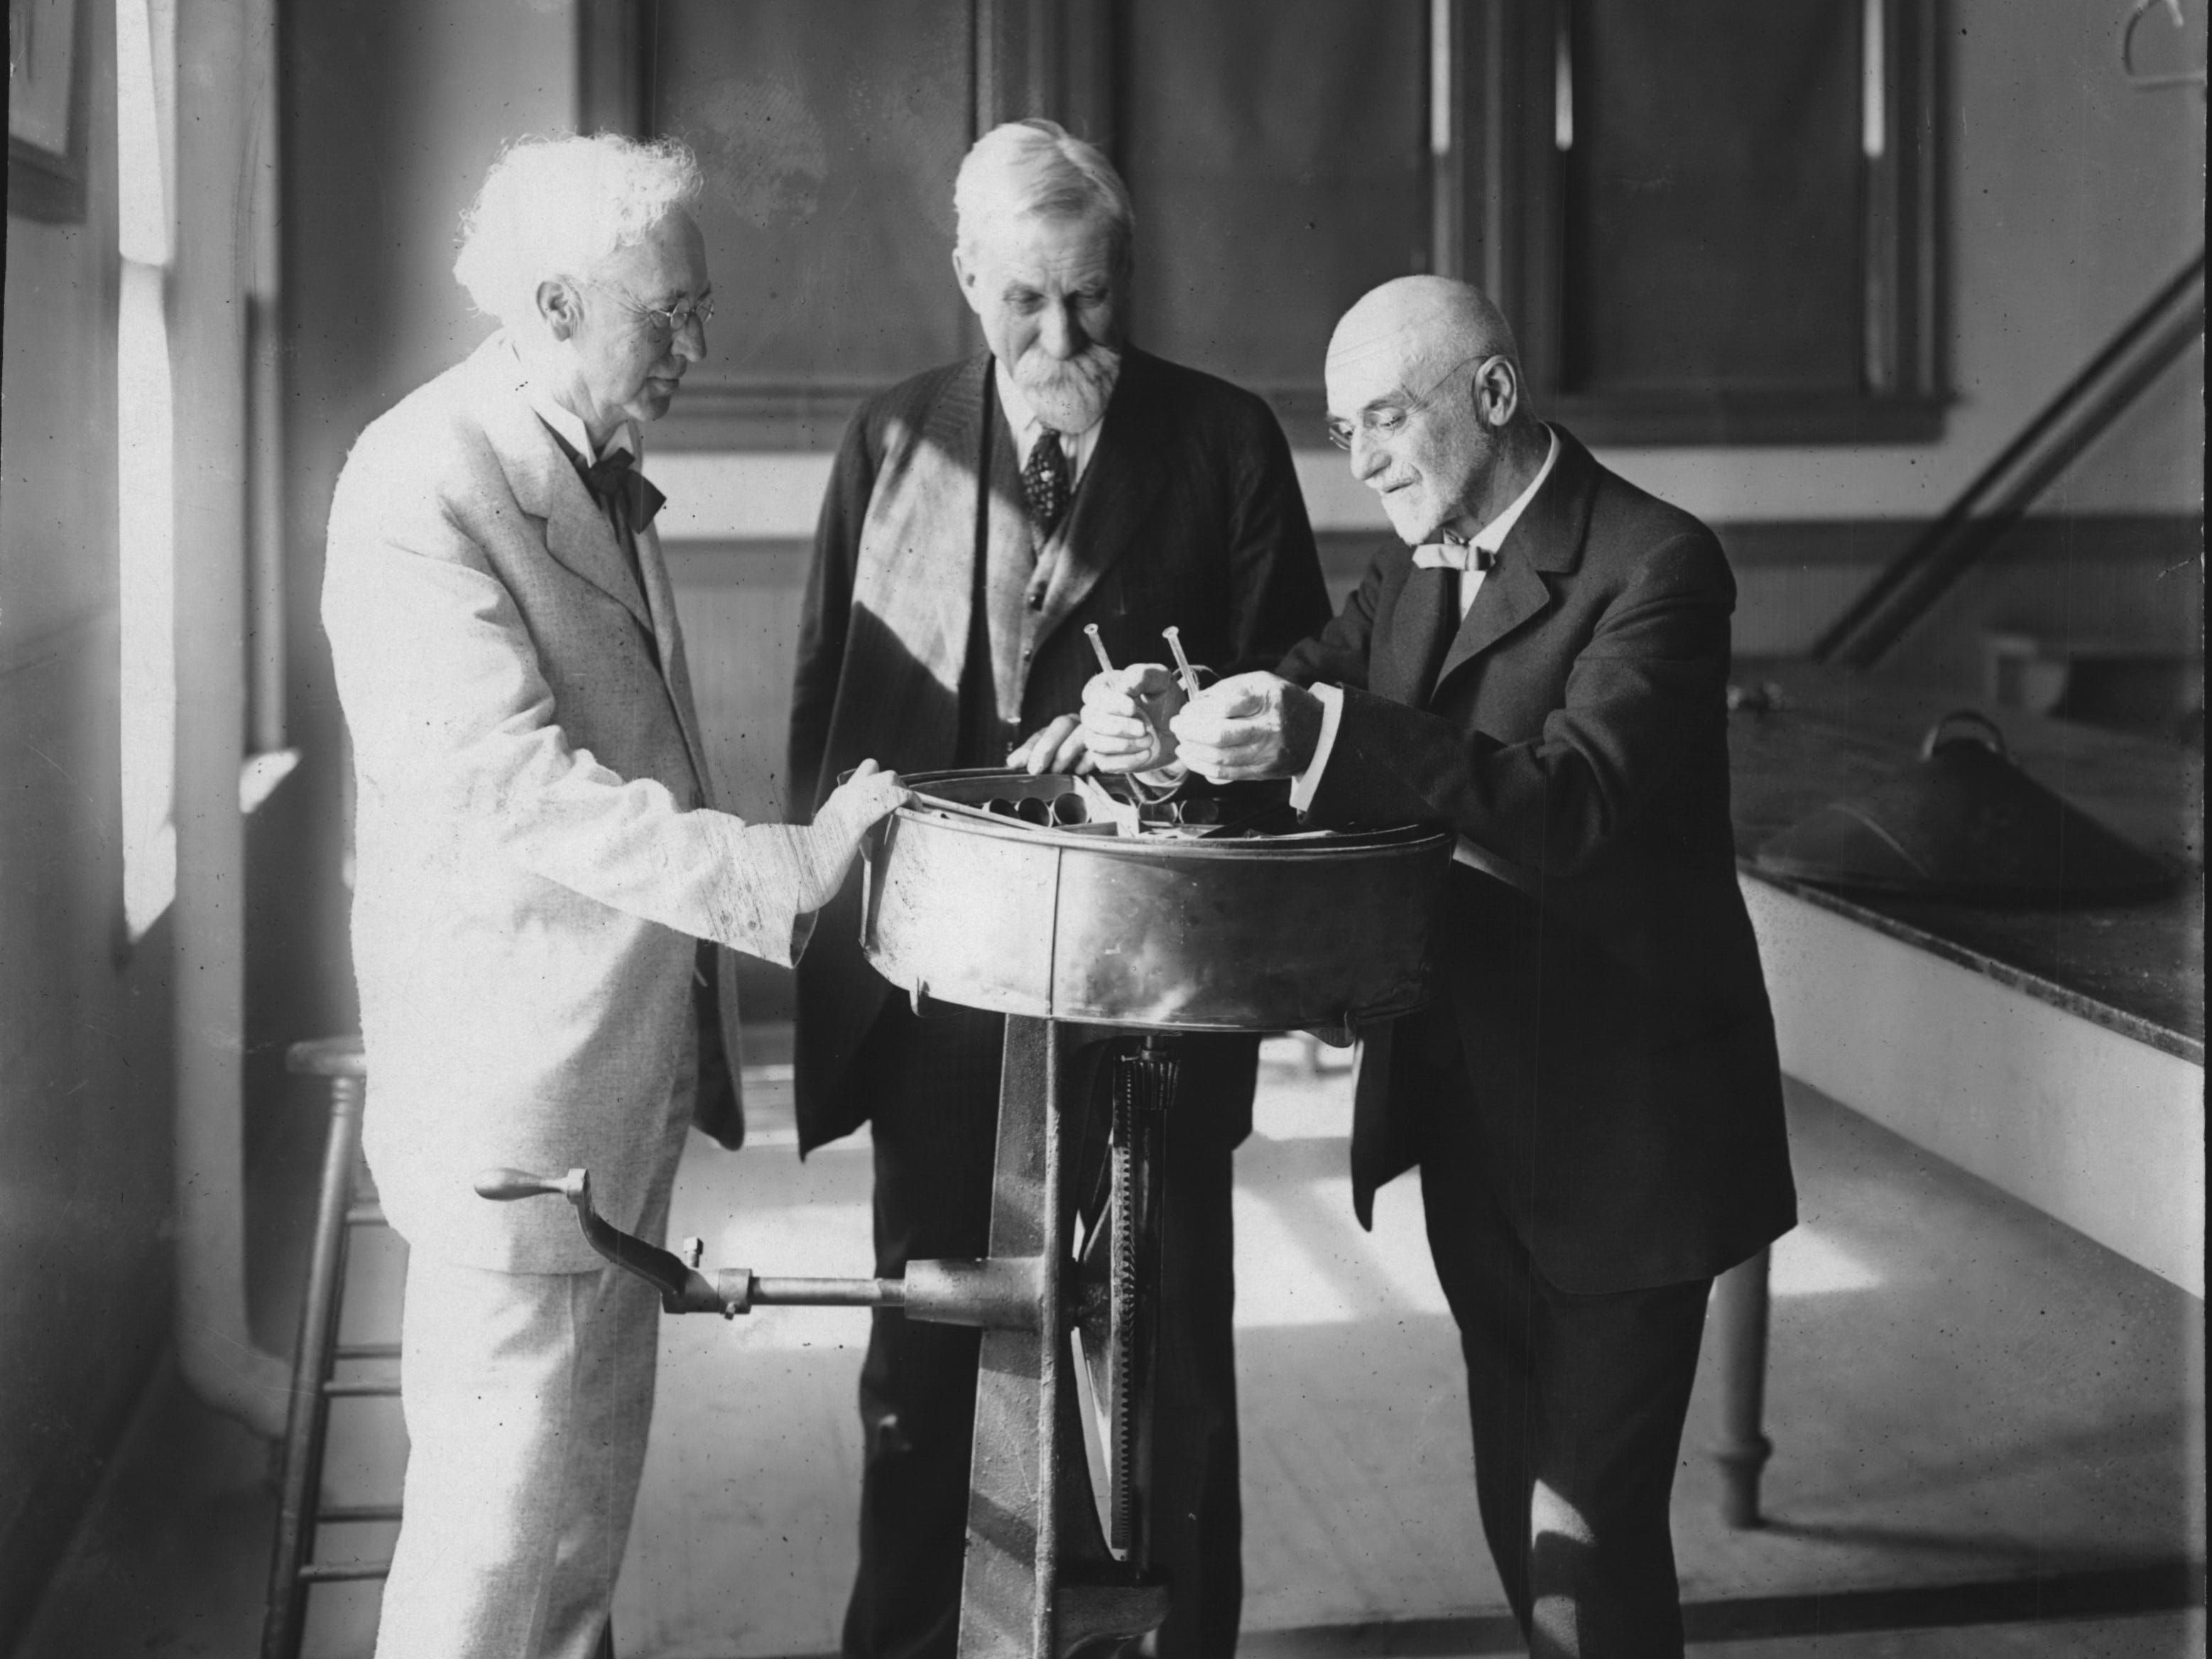 Circa mid1920s: Significant contributors to Wisconsin's agriculture and dairying industry are from left, Prof. W. A. Henry, first dean of the Wisconsin college of agriculture, Dr. Thomas C. Chamberlain, who was president of the university from 1887 to 1892, and Dr. Stephen Moulton Babcock. The three are shown looking back to the earliest operations of the famous Babcock test, which was perfected in 1890.